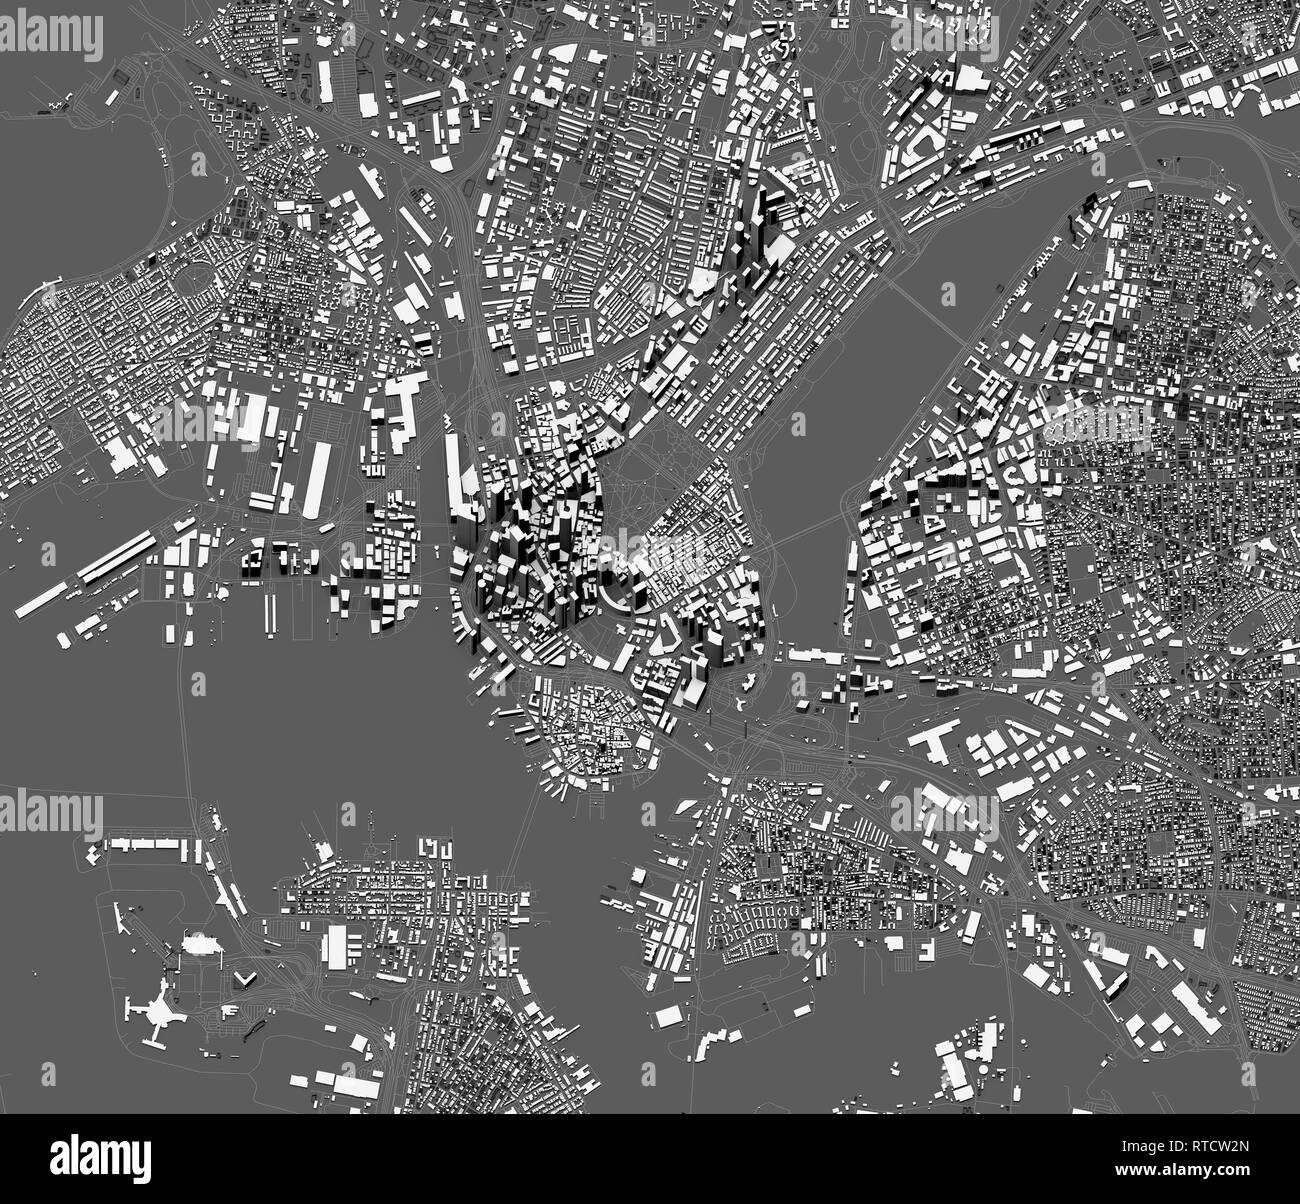 Satellite view of Boston, map of the city with house and ... on u.s. white house, curtis smith white house, gyrocopter white house, aerial view white house, map of white house, omar gonzalez white house, power map white house, prince white house, ariana grande white house, satellite maps aerial view of my home, lincoln's white house, front door colors for white house, first white house, barvetta singletary white house, rainbow colored white house, rihanna white house, satellite view house by address, ciara white house, 2015 white house, street map white house,